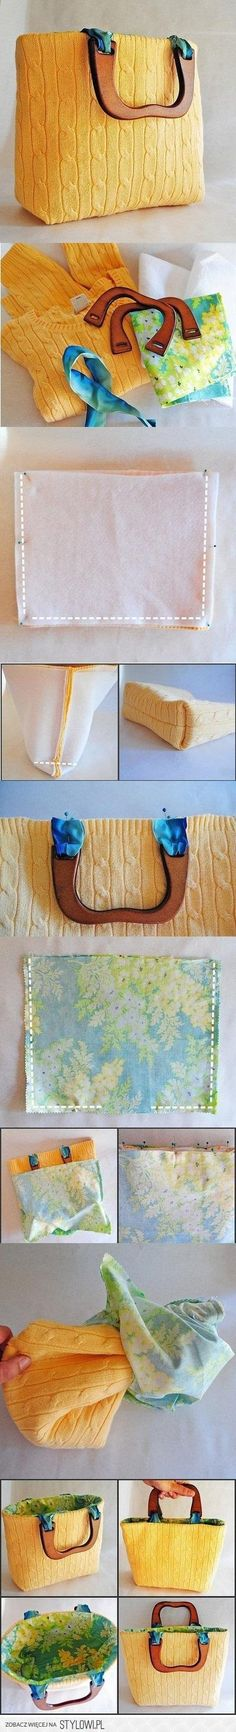 Very cute DIY tote bag w/ upcycled sweater & printed fabrics